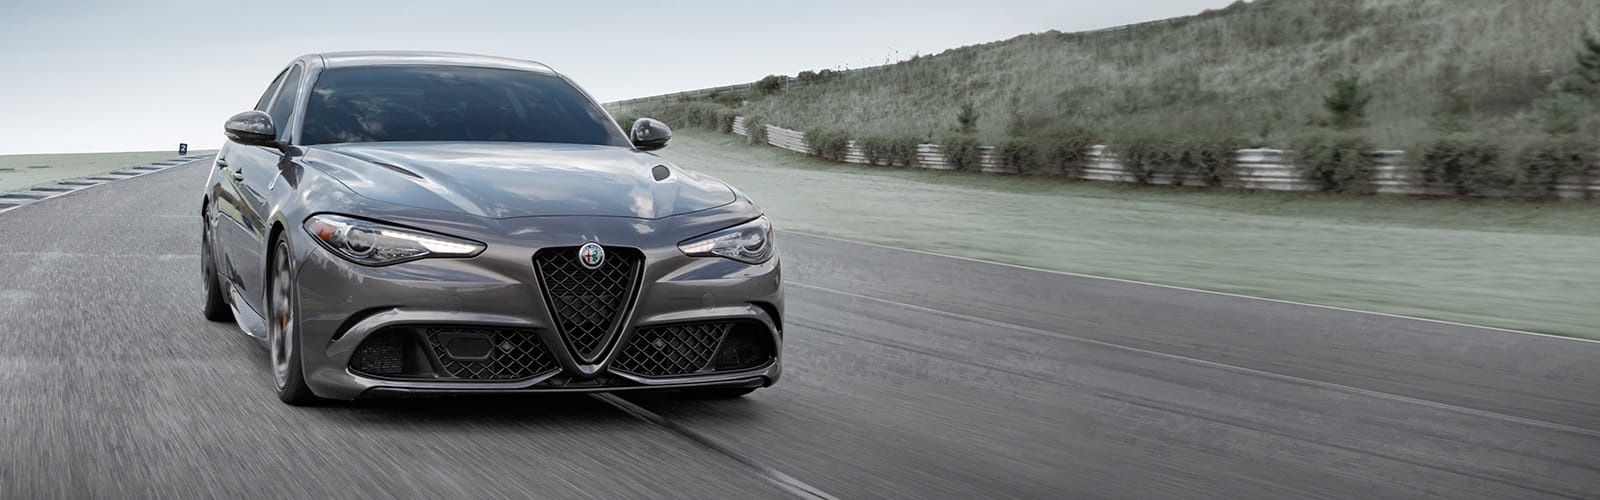 A front end view of a gray 2020 Alfa Romeo Giulia Quadrifoglio being driven on a track.